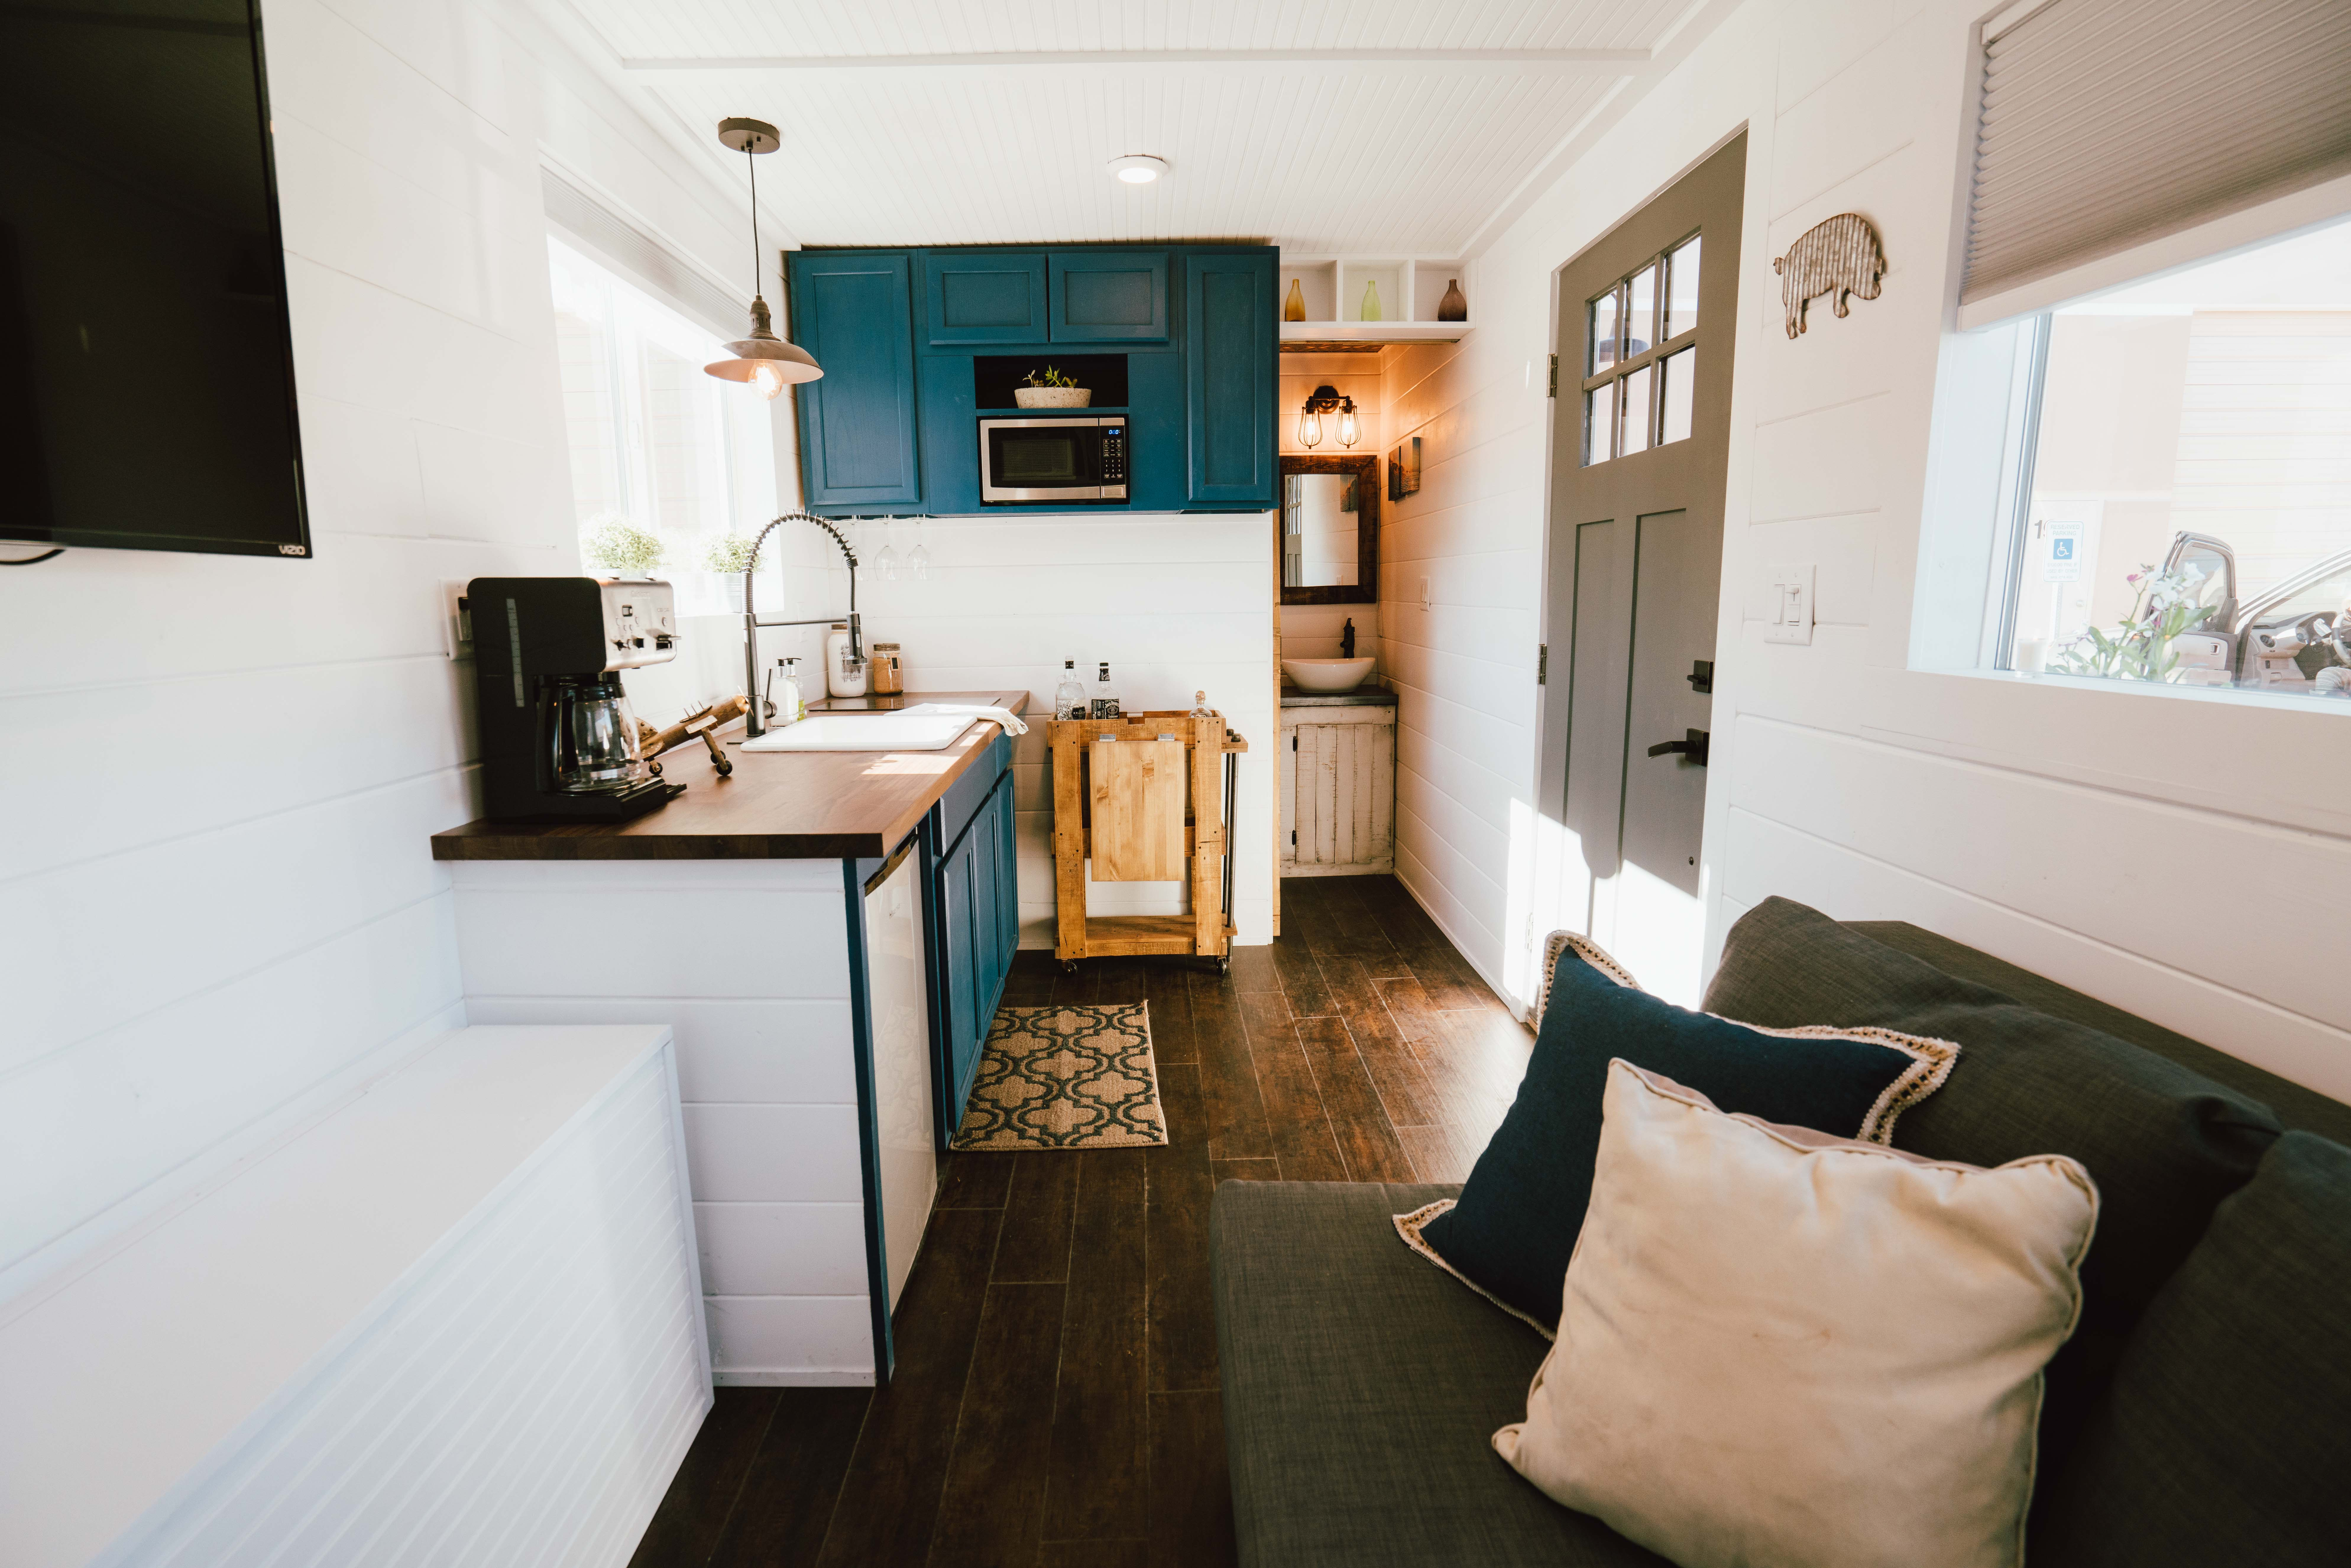 The Kitchen And Living Room Area Of The Shipping Container House In Zion.  Courtesy Of Alternative Living Spaces